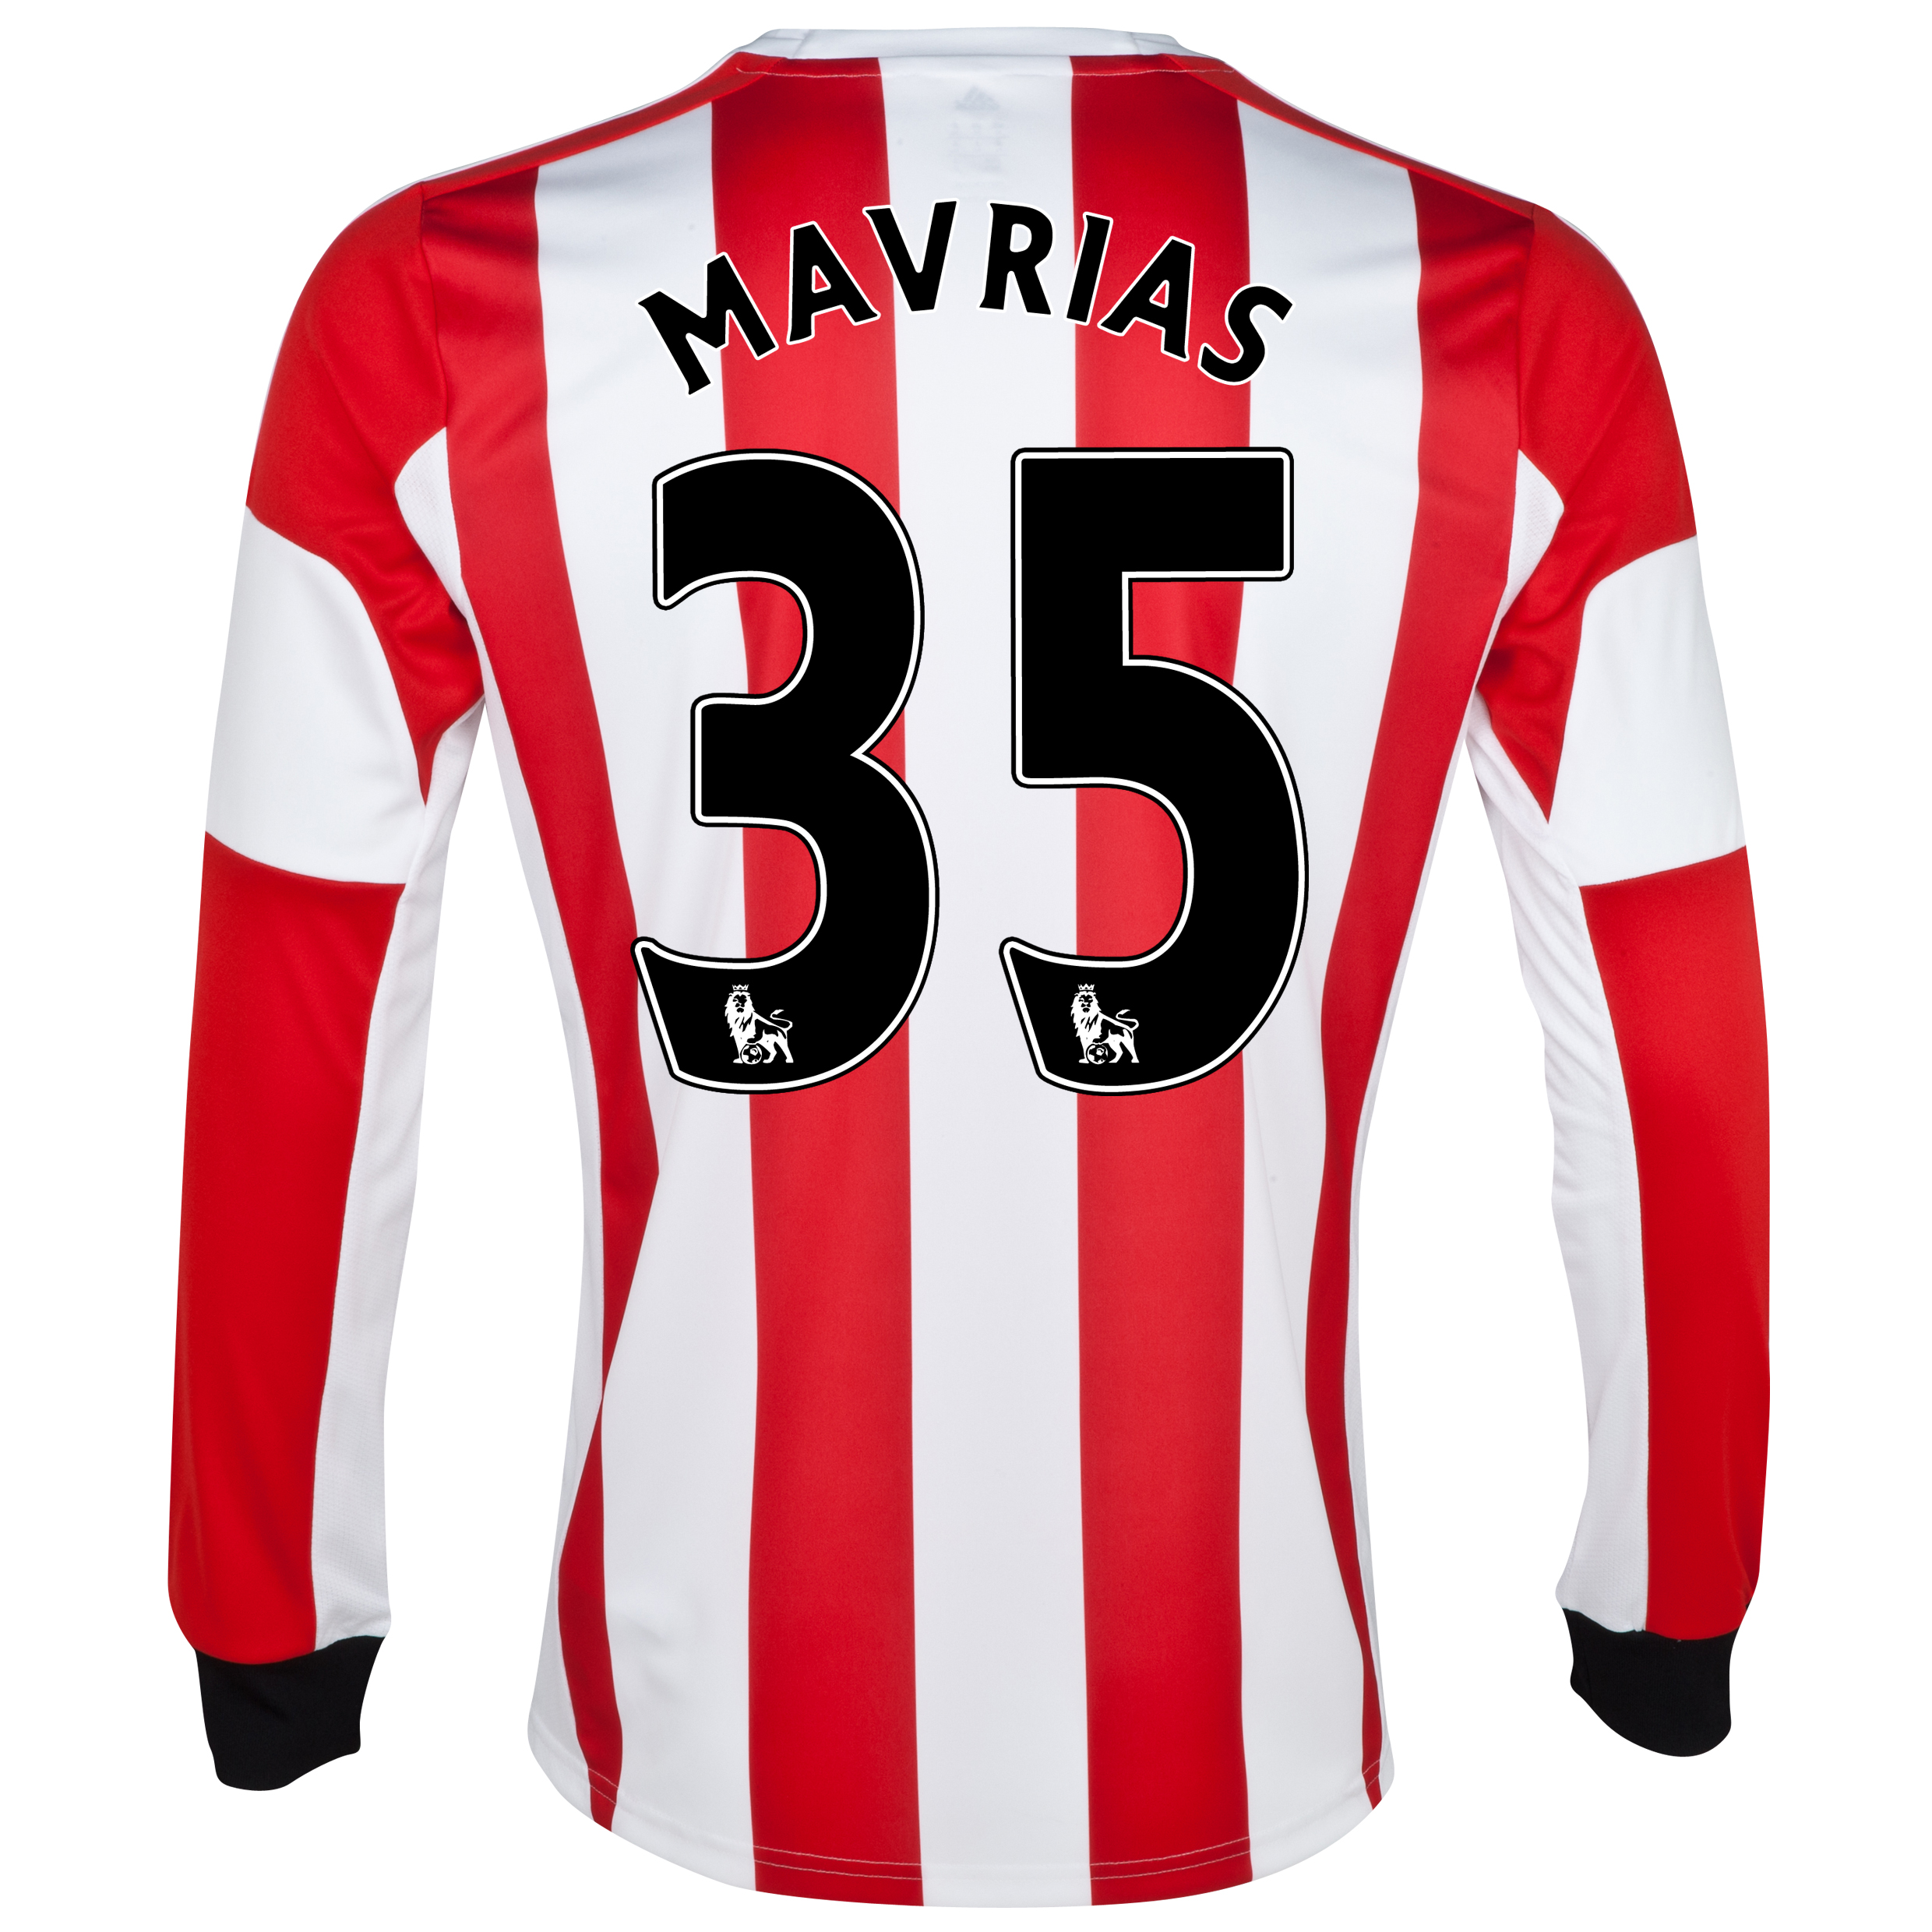 Sunderland Home Shirt 2013/14 - Long Sleeved - Junior with Mavrias 35 printing